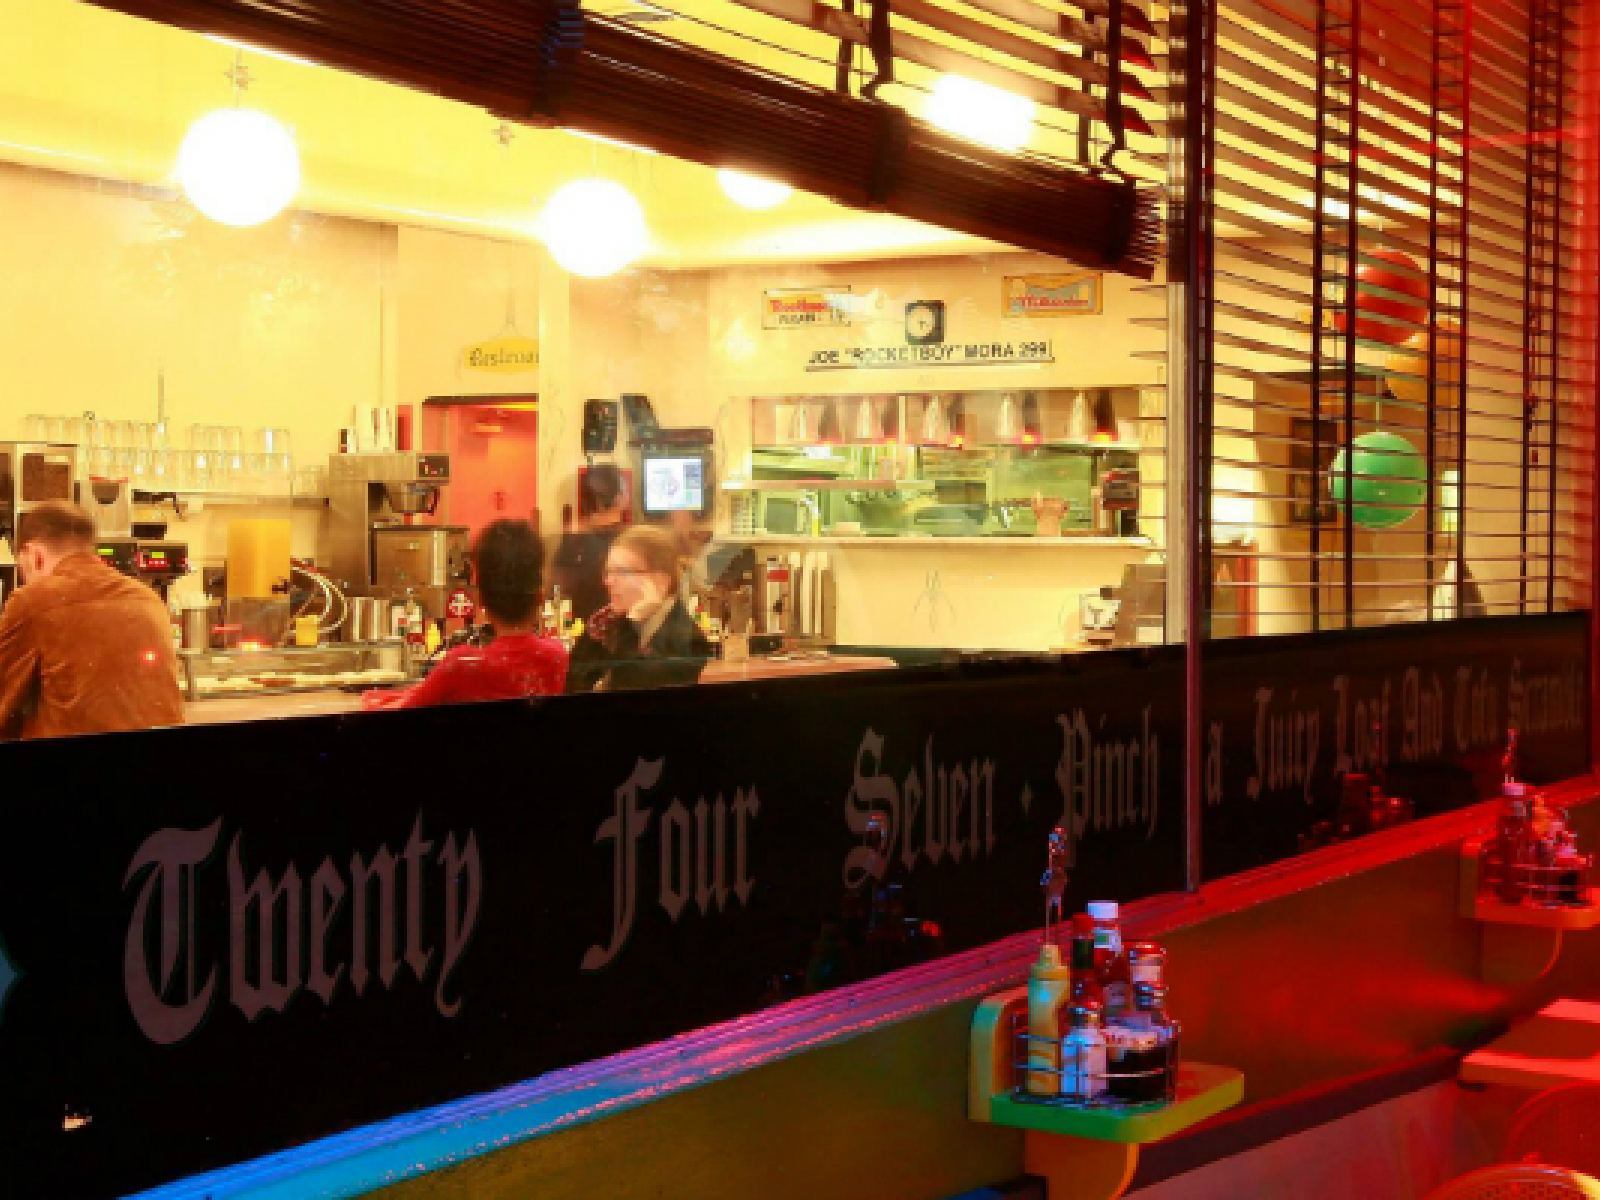 Gay los angeles 24 hour diners